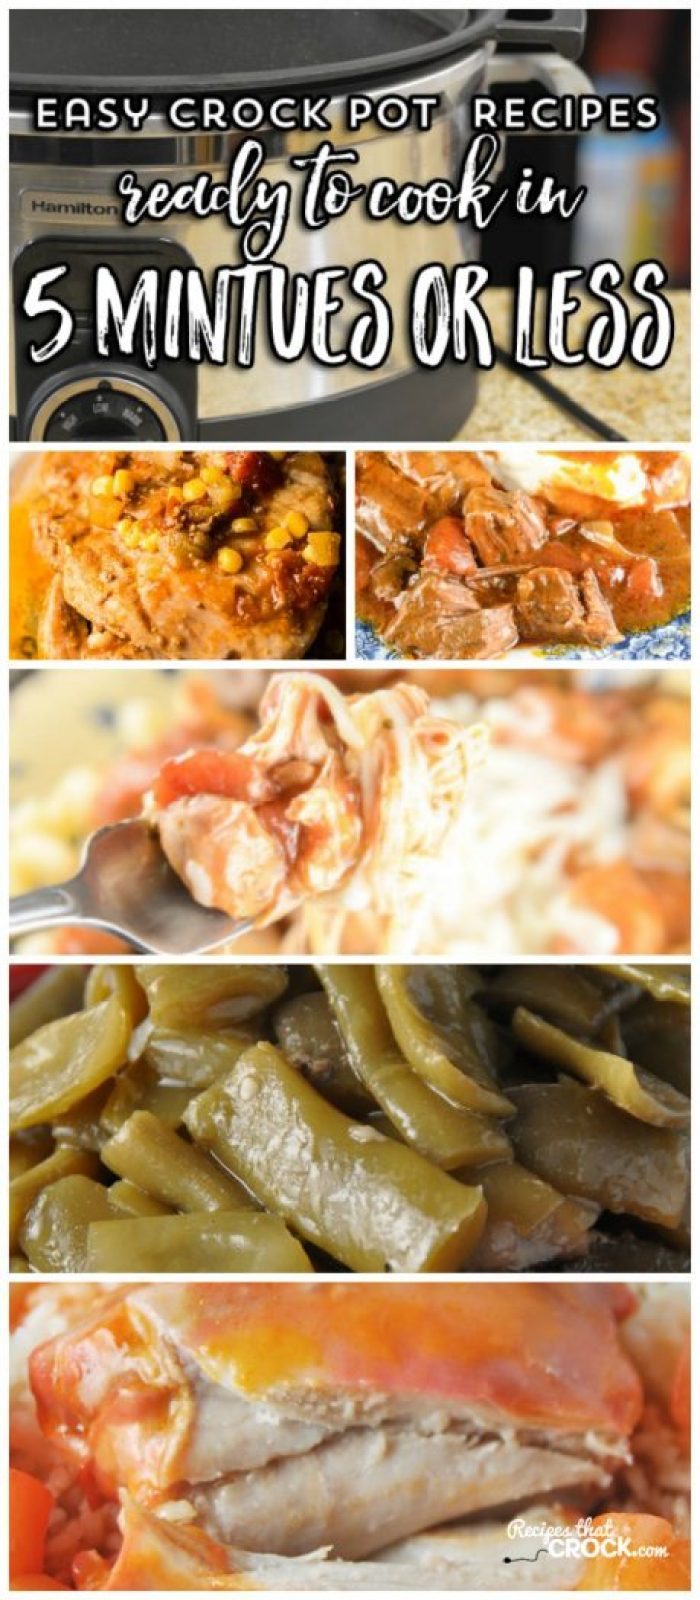 These easy crock pot recipes can be prepared in 5 minutes or less! Italian Beef Roast, Fiesta Pork Chops, One Pot Sausage Dinner, Catalina Chicken, Spanish Rice, Fiesta Mac and Cheese, Crock Pot Green Beans, Slow Cooker Beans and Weenies and more! These recipes make busy back to school days so much easier and are a great way to use up your pantry canned food staples. #Ad #CansGetYouCooking